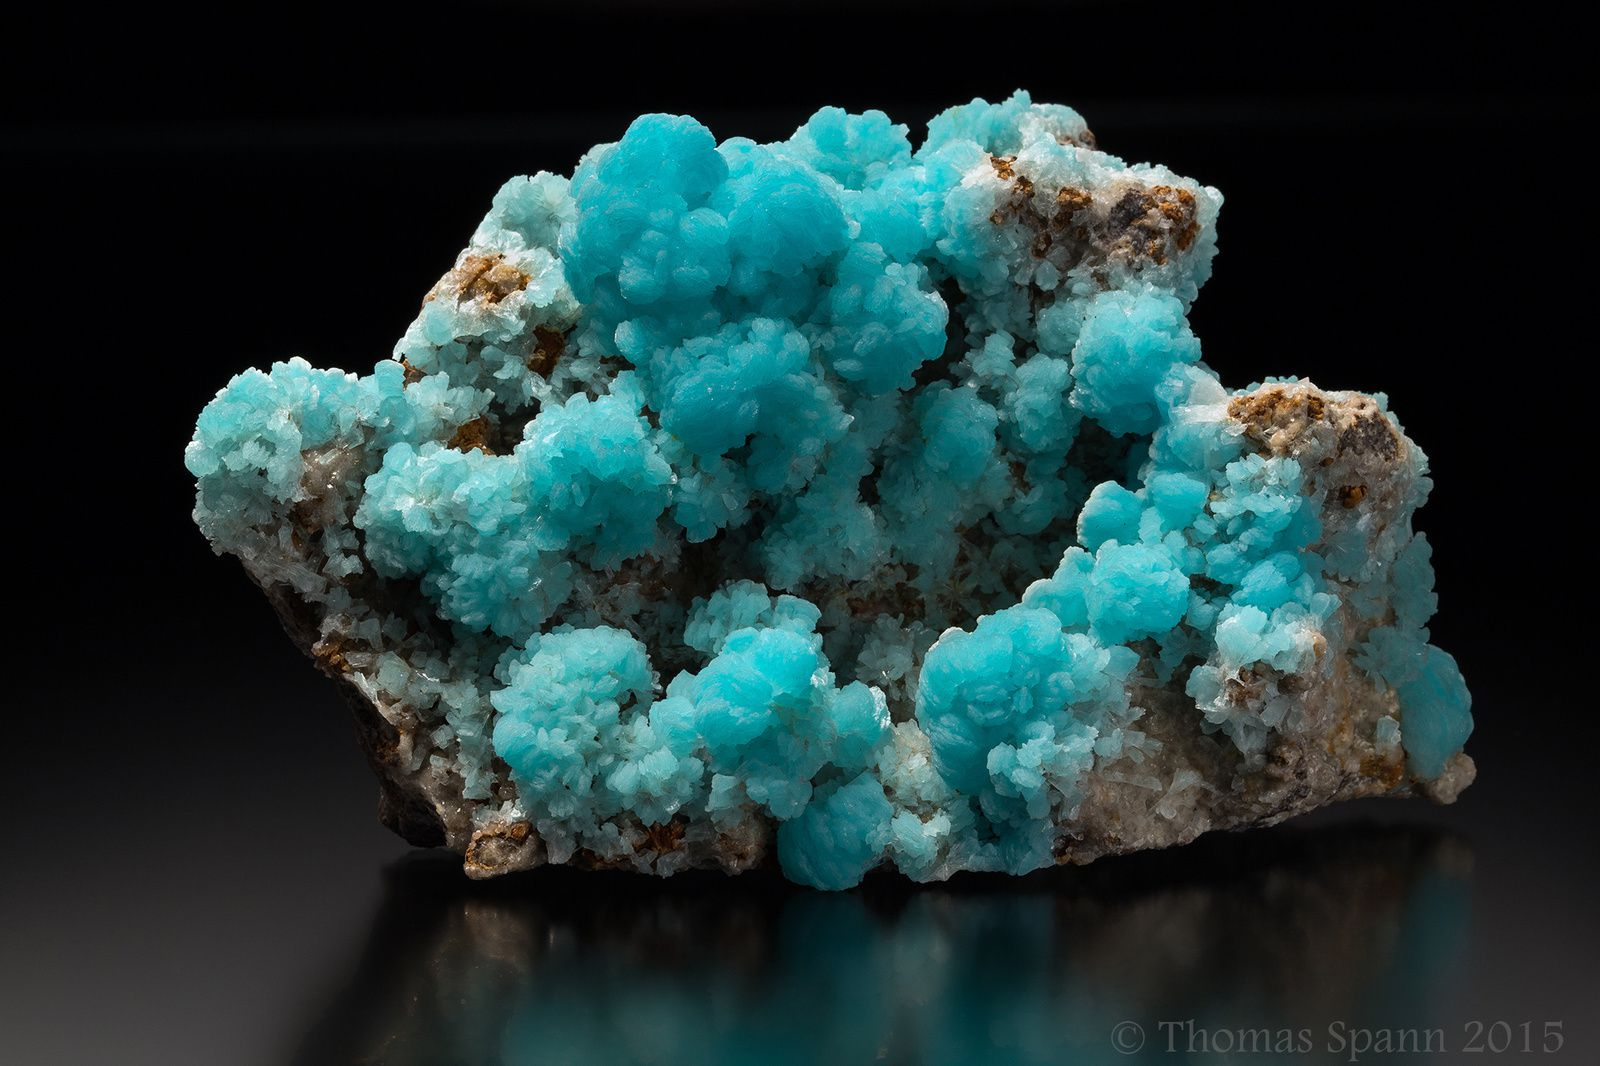 Hemimorphite from M'Fouati, Brazzaville, Congo (specimen and photo by Thomas Spann)